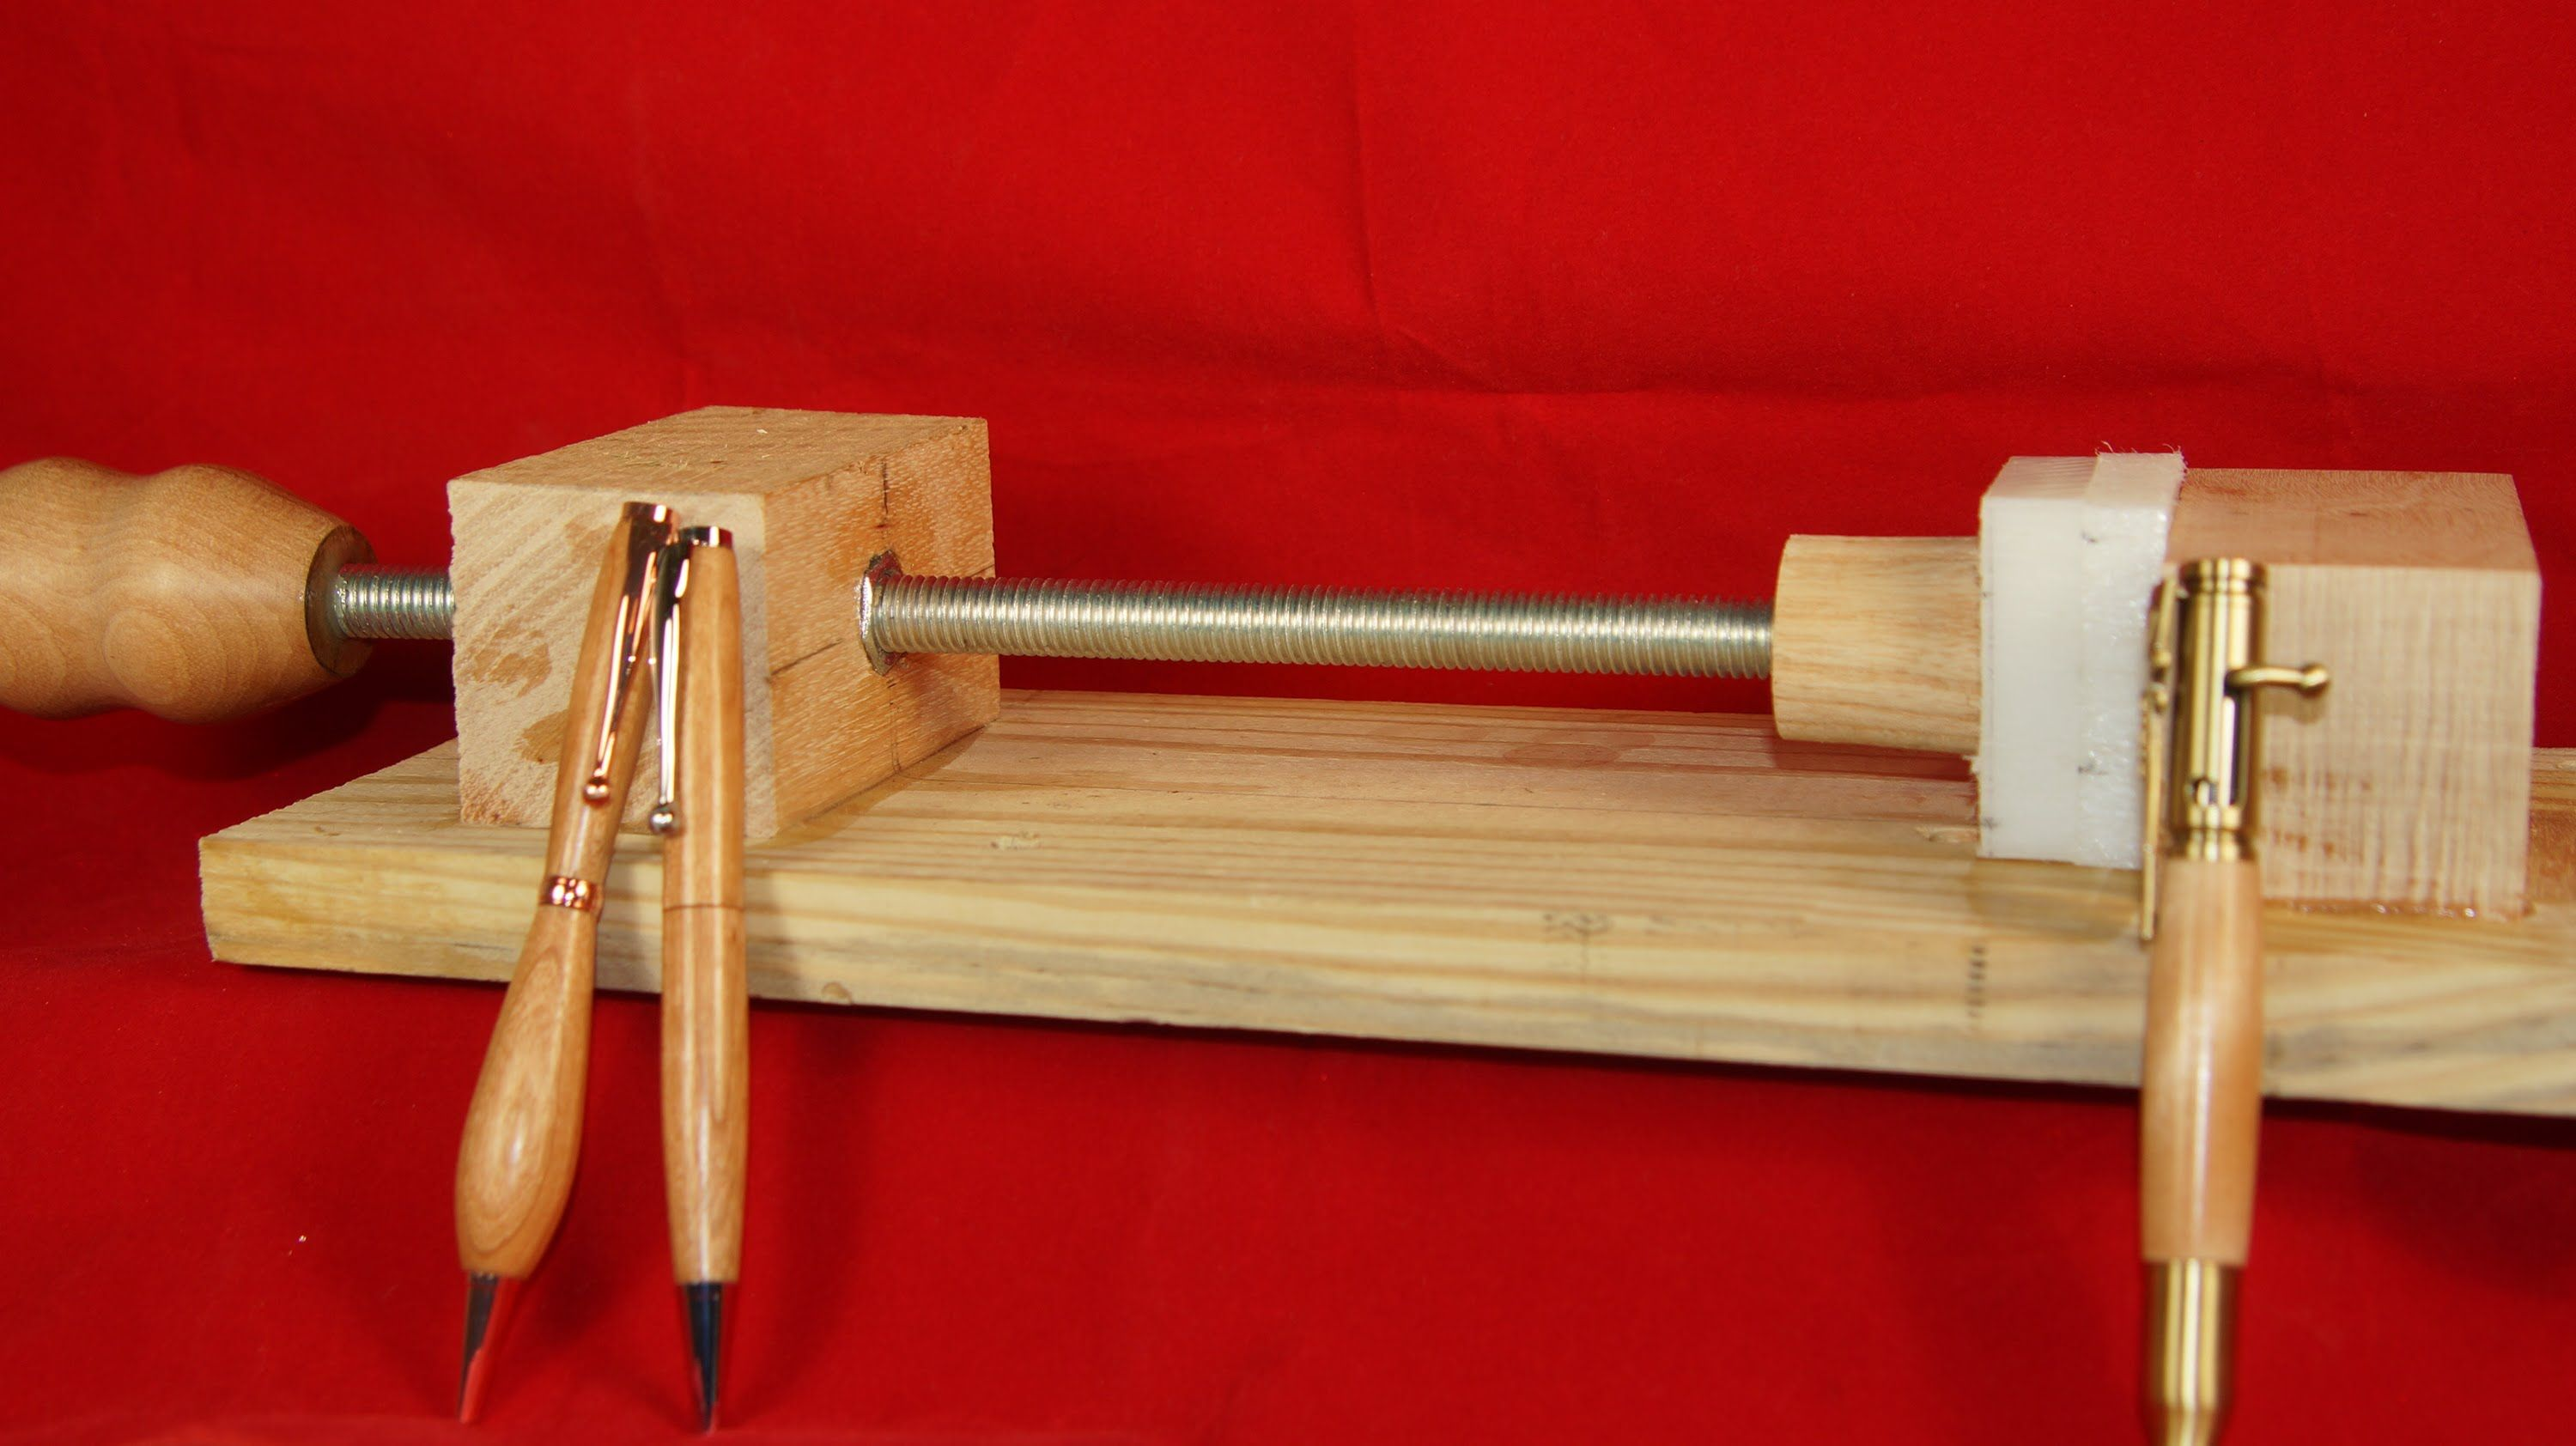 Pen Press And Pen Makers Vise Solution 16 Essential Woodworking Tools Wood Turning Projects Woodworking